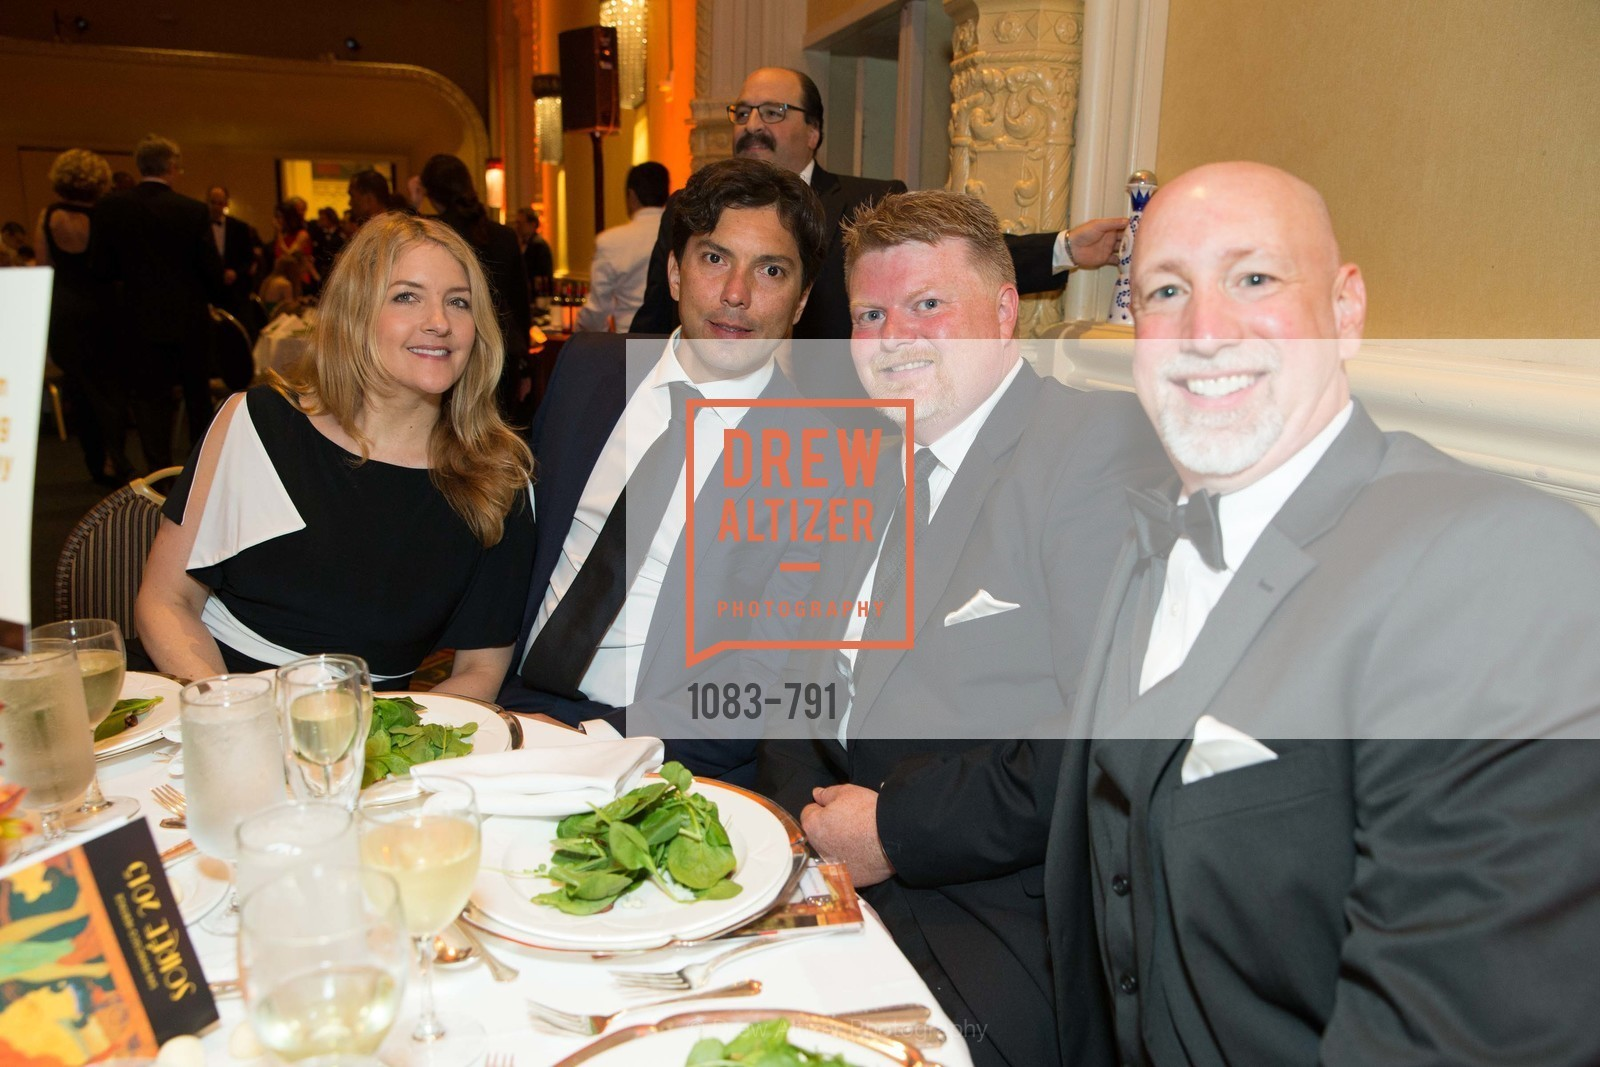 Jill Helffenstein, Terry Kelley, Jesse Cowdrey, James Landman, SAN FRANCISCO HERITAGE Soiree 2015, US, April 19th, 2015,Drew Altizer, Drew Altizer Photography, full-service agency, private events, San Francisco photographer, photographer california